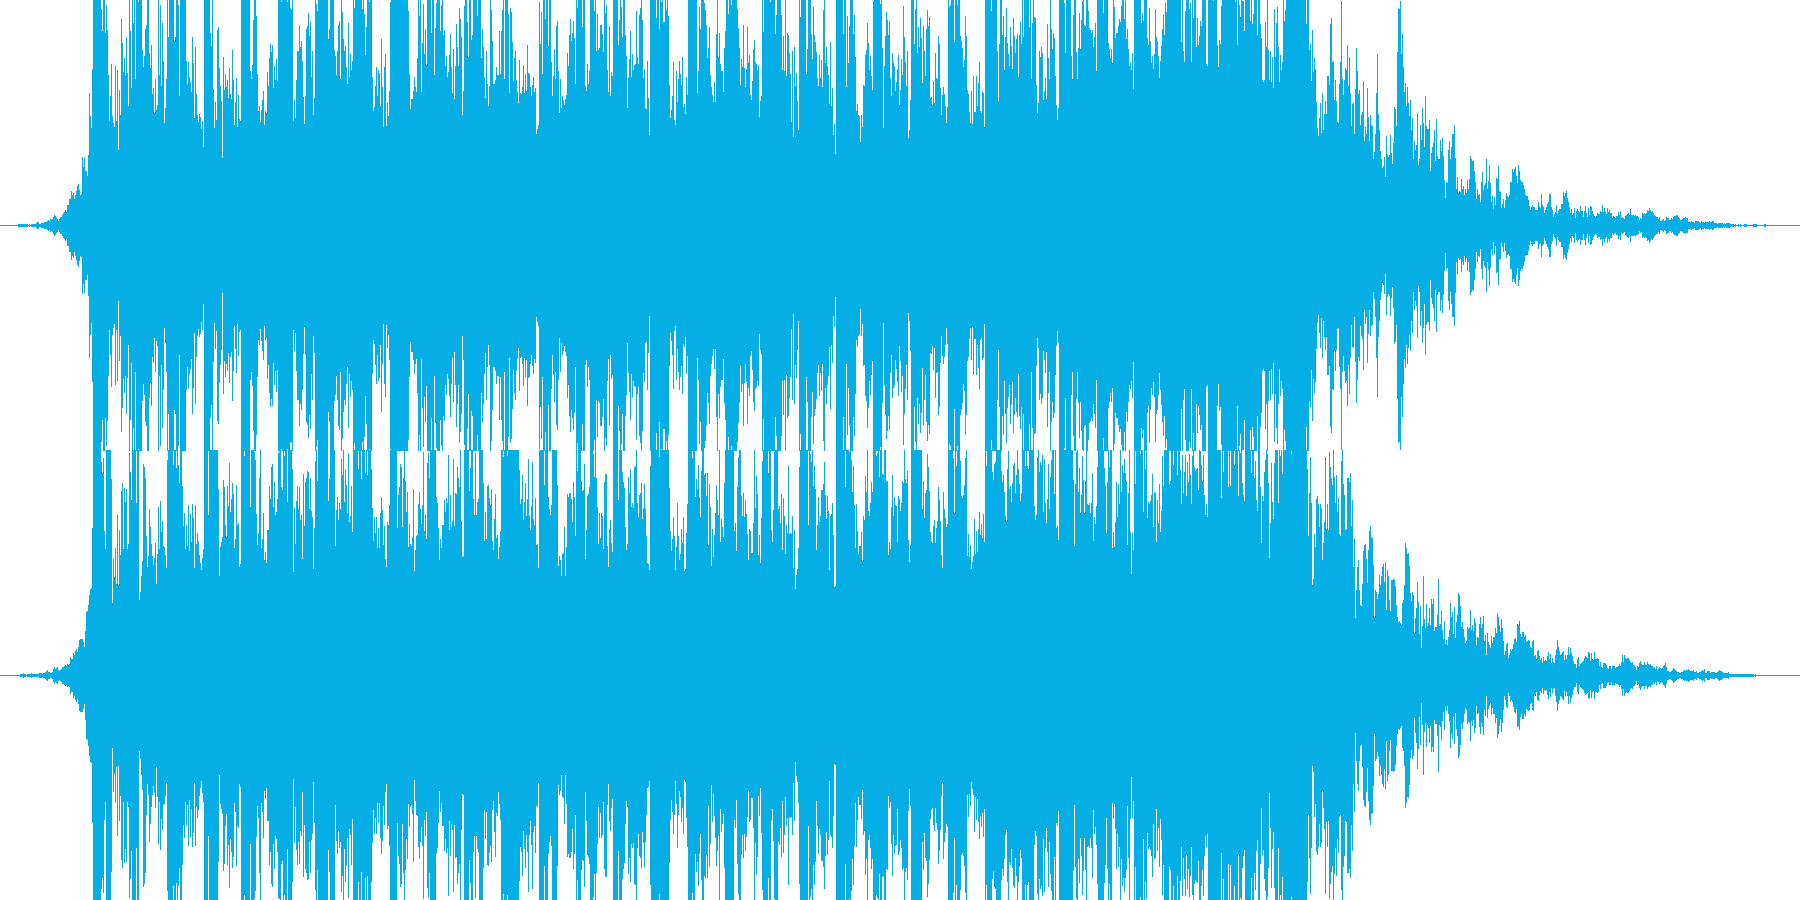 Exciting opening and appearance's reproduced waveform